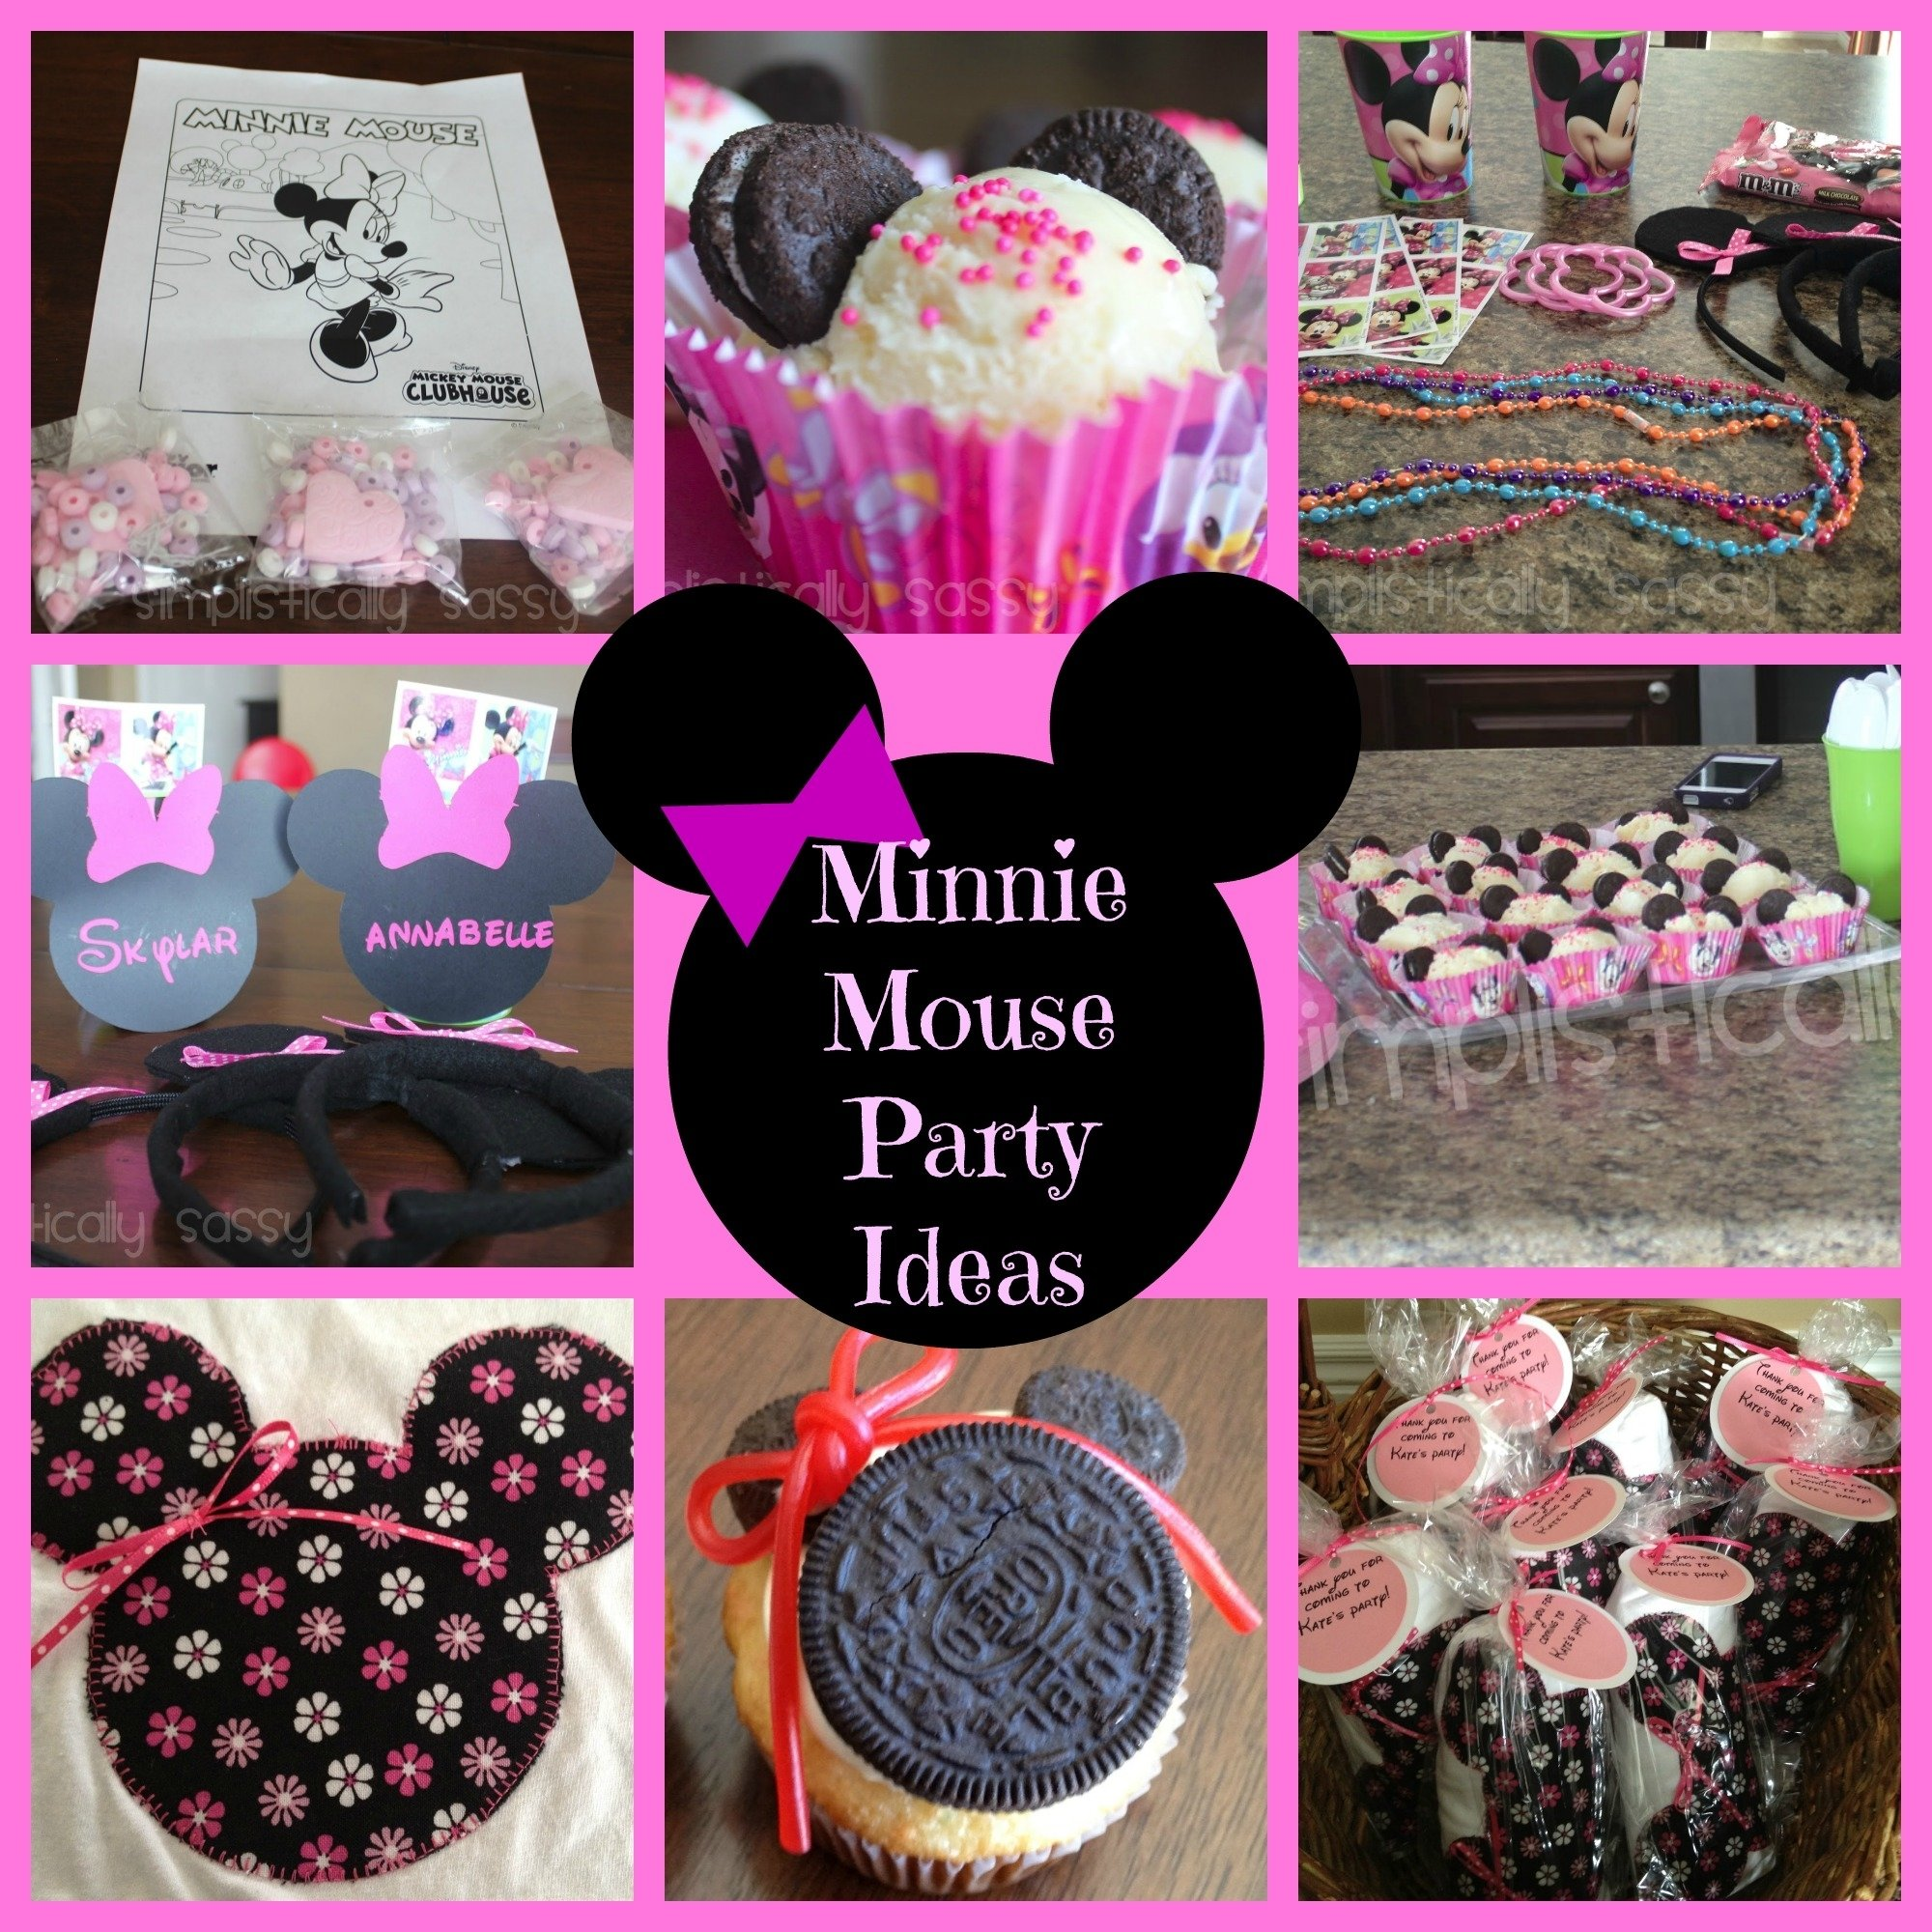 minnie mouse party ideas - events to celebrate!